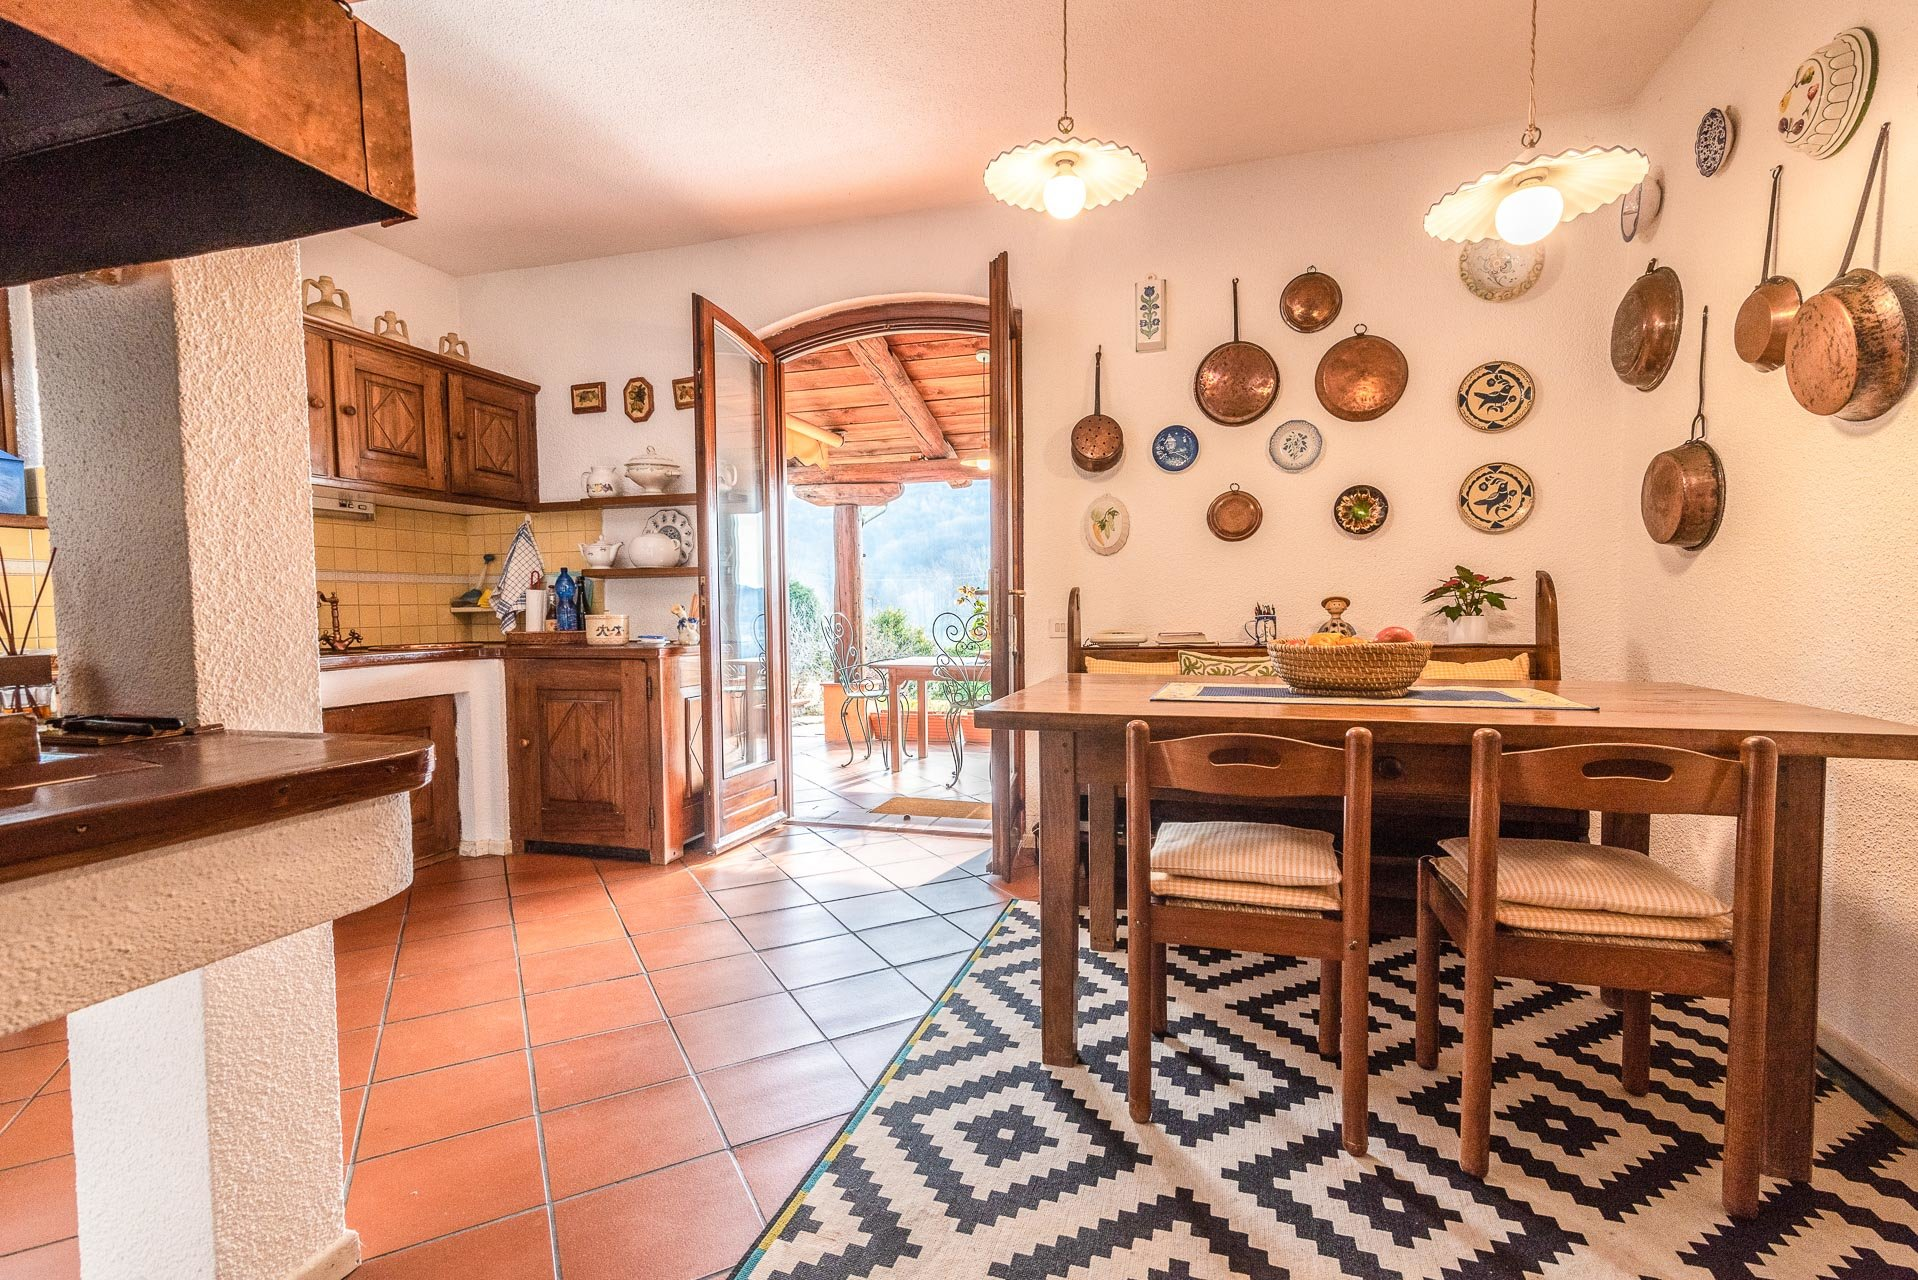 Elegant villa for sale in Pettenasco on Lake Orta - large kitchen